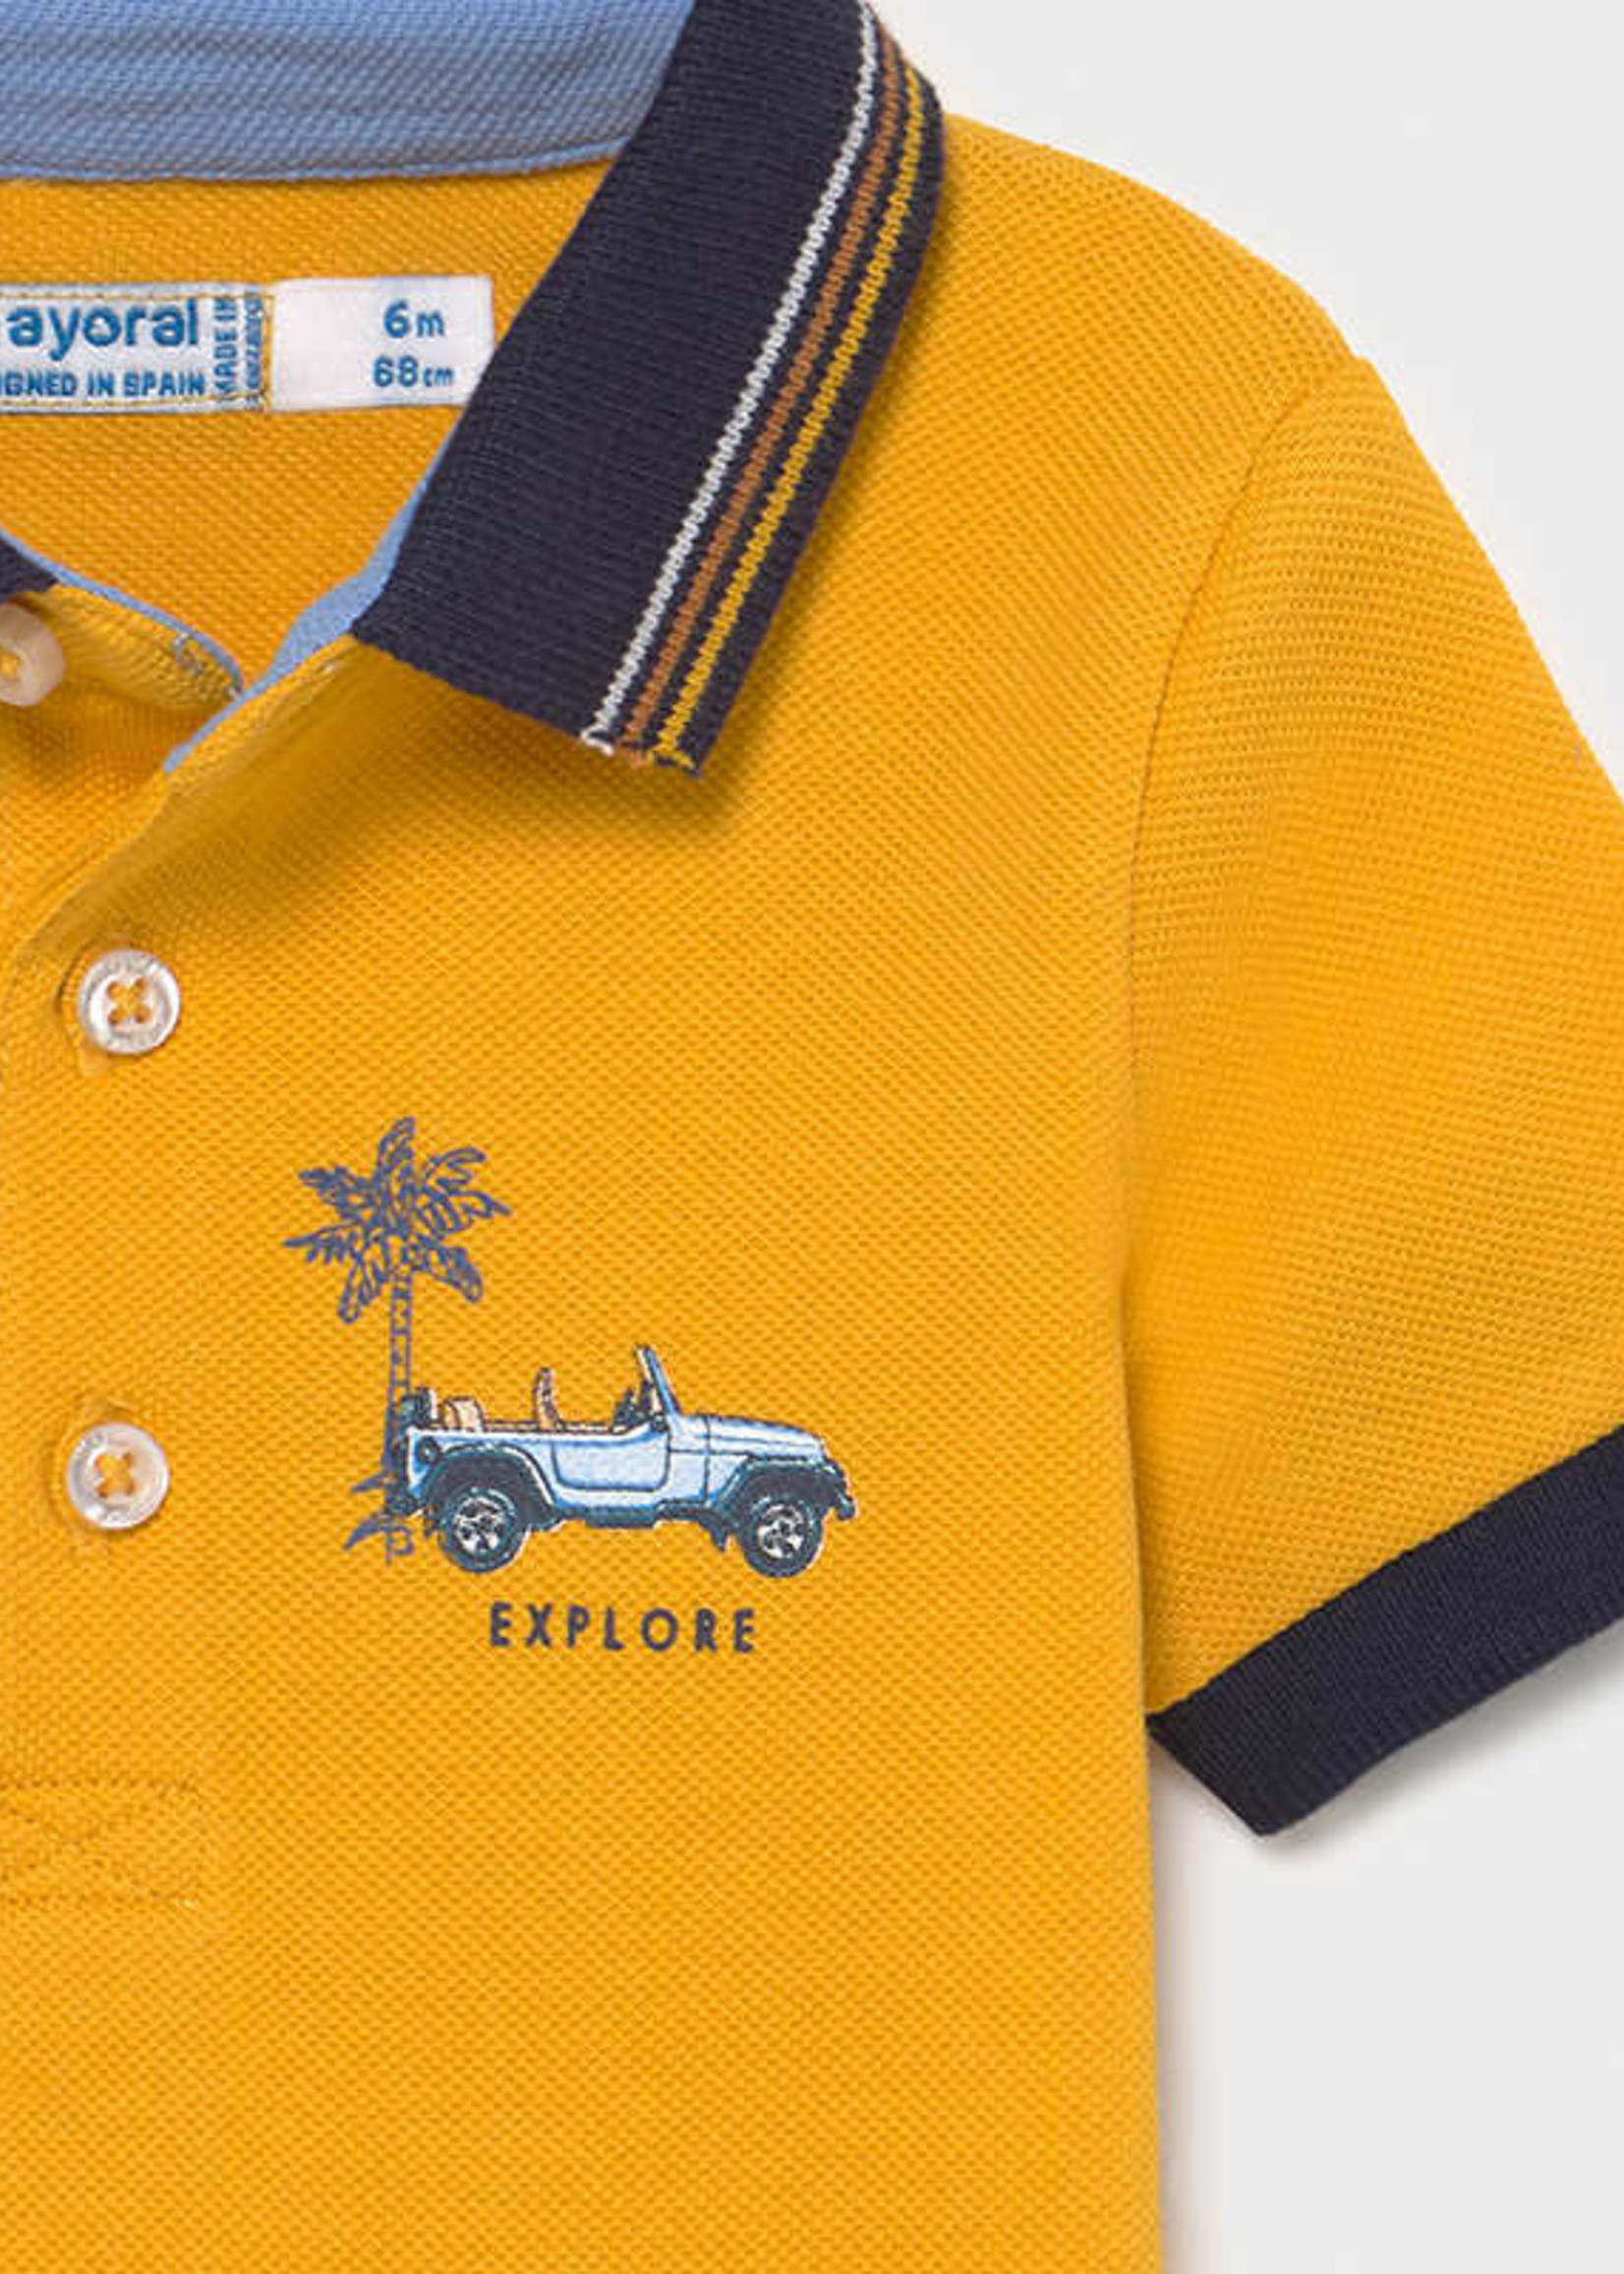 Mayoral Mayoral explore polo for baby